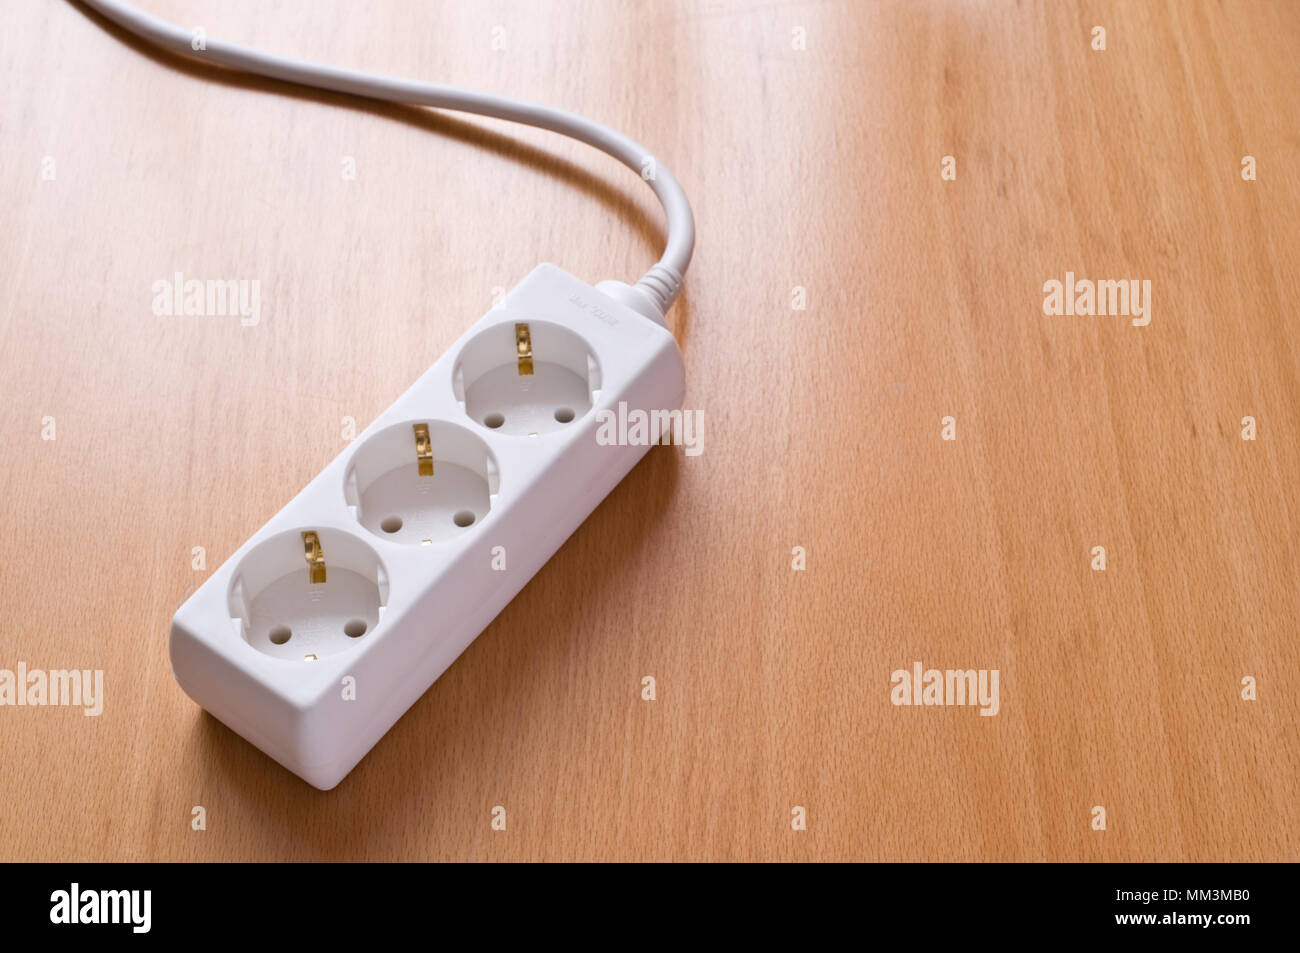 Multiple Plug Stock Photos Images Alamy How To Wire Electrical Outlets Socket Outlet On Wooden Floor Image